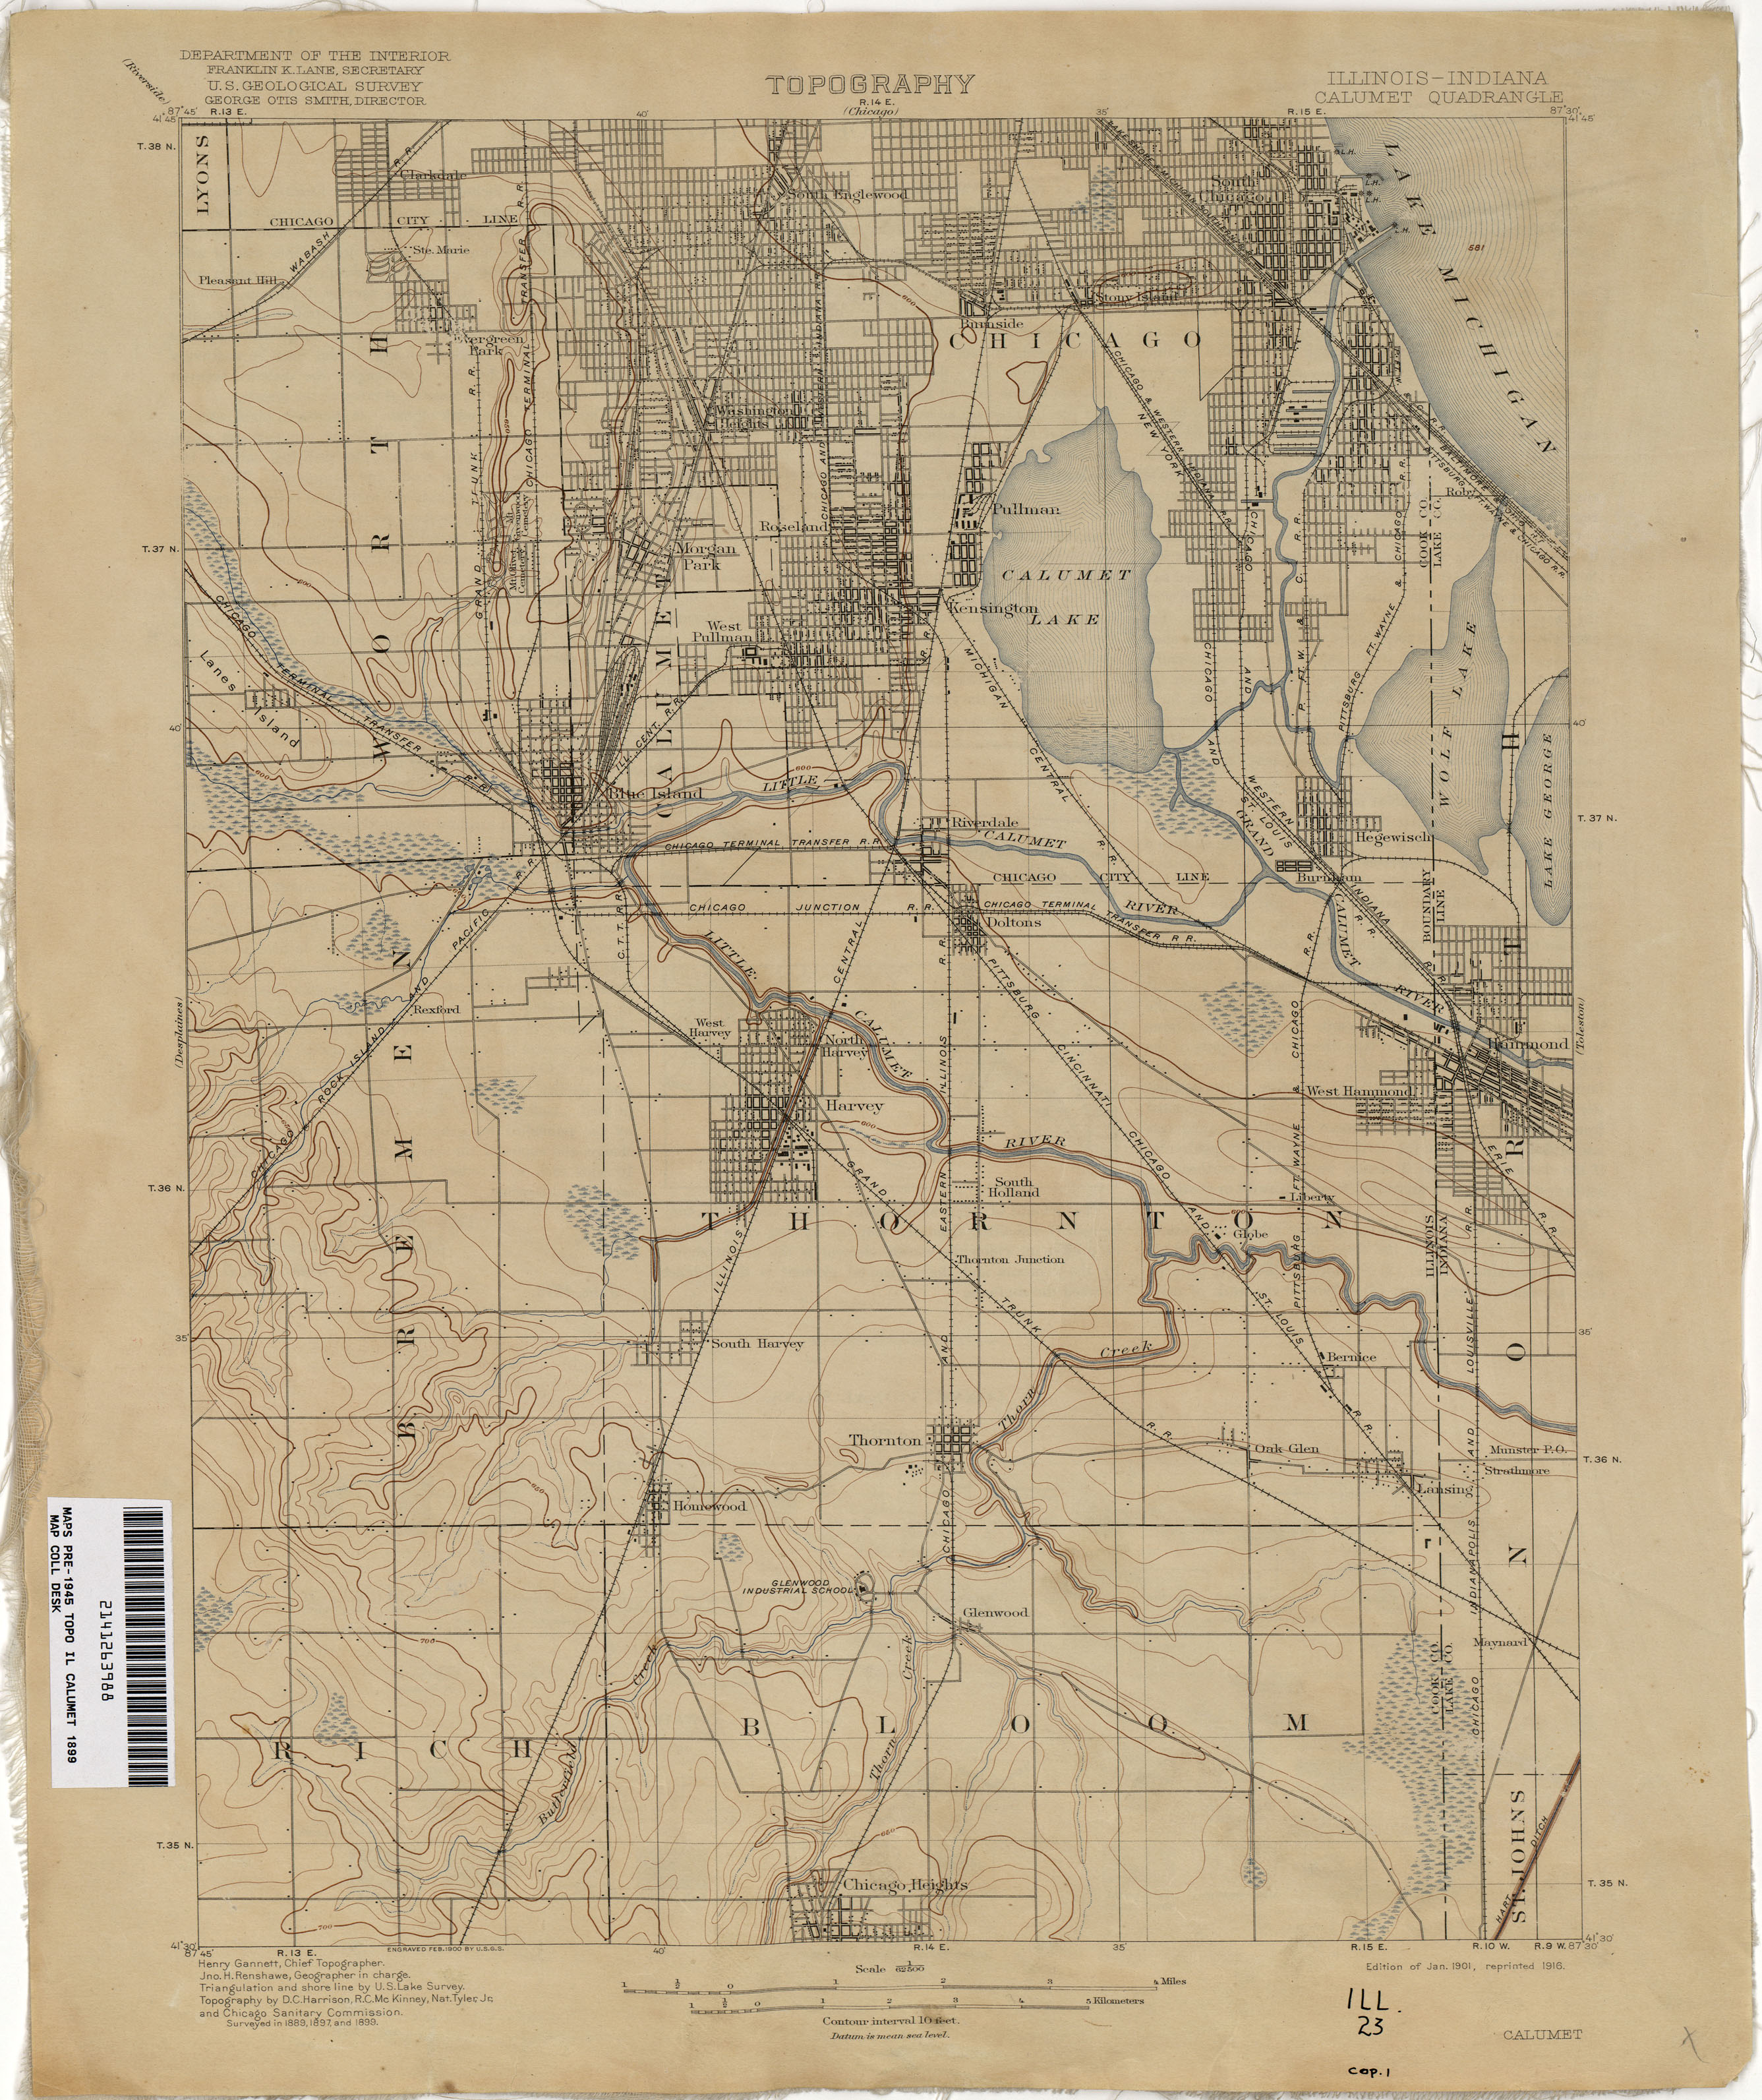 Indiana Historical Topographic Maps PerryCastañeda Map - Map of indiana and illinois